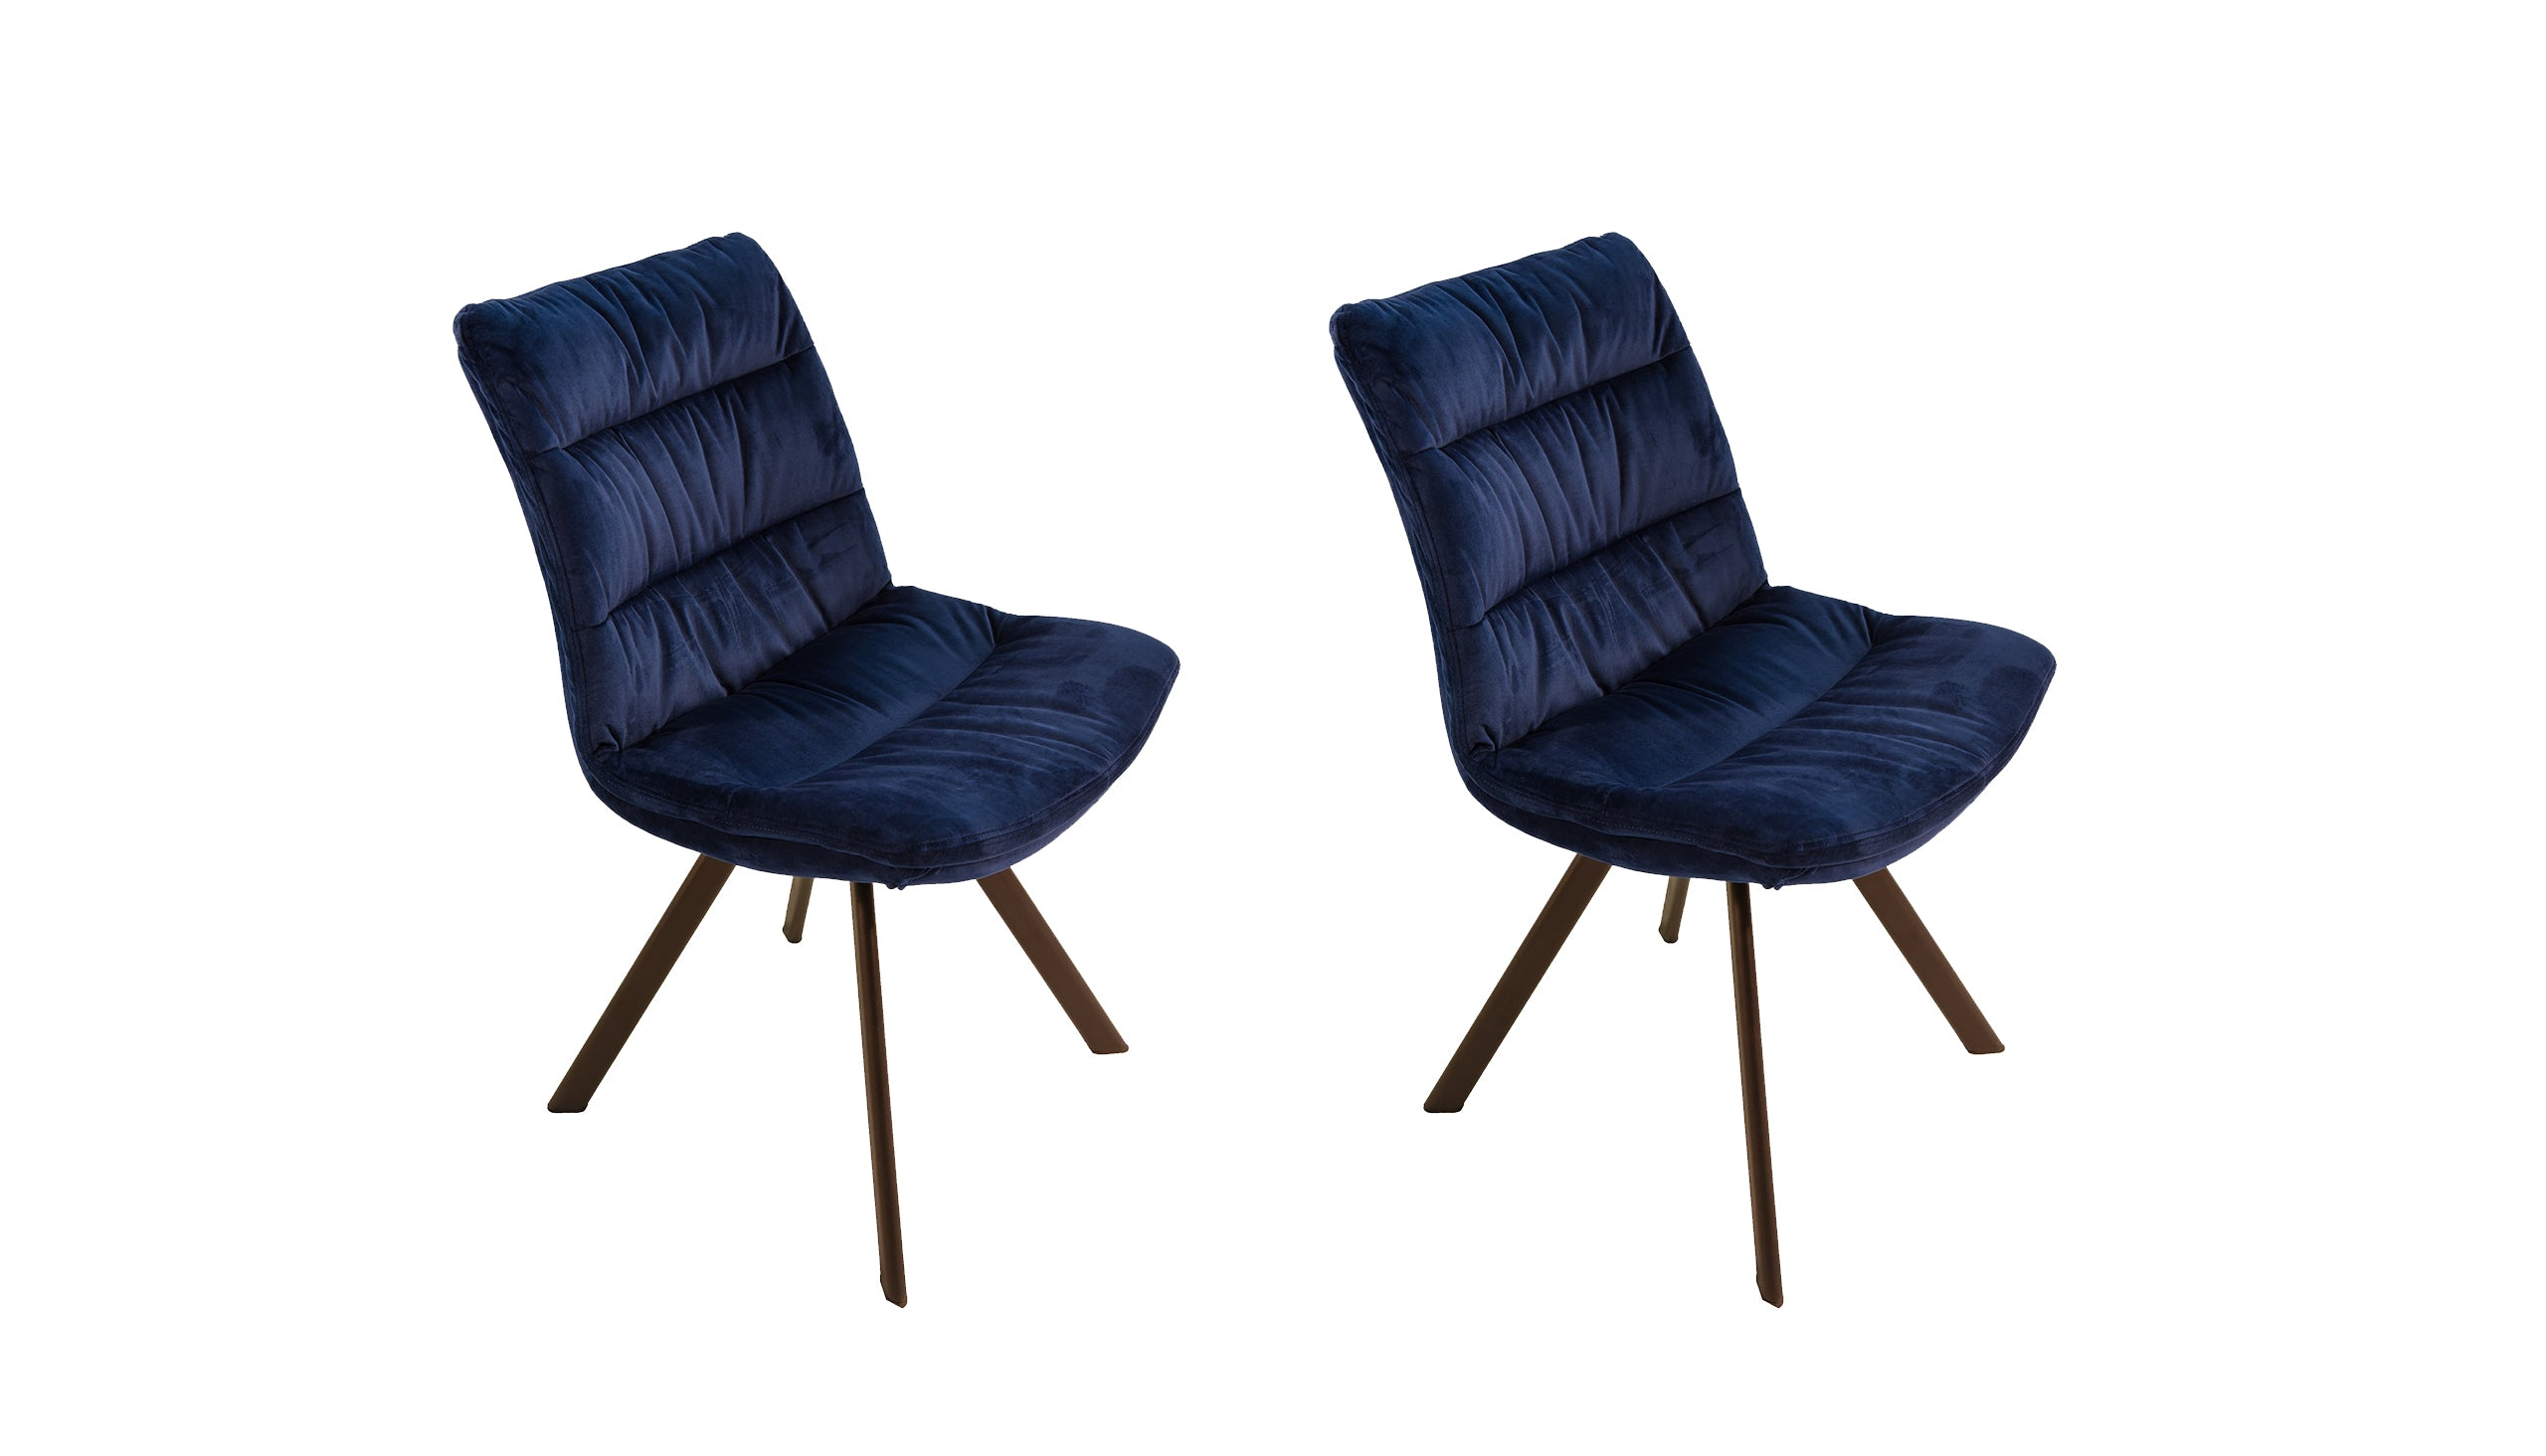 Pair of Brooklyn Velvet Dining Chairs